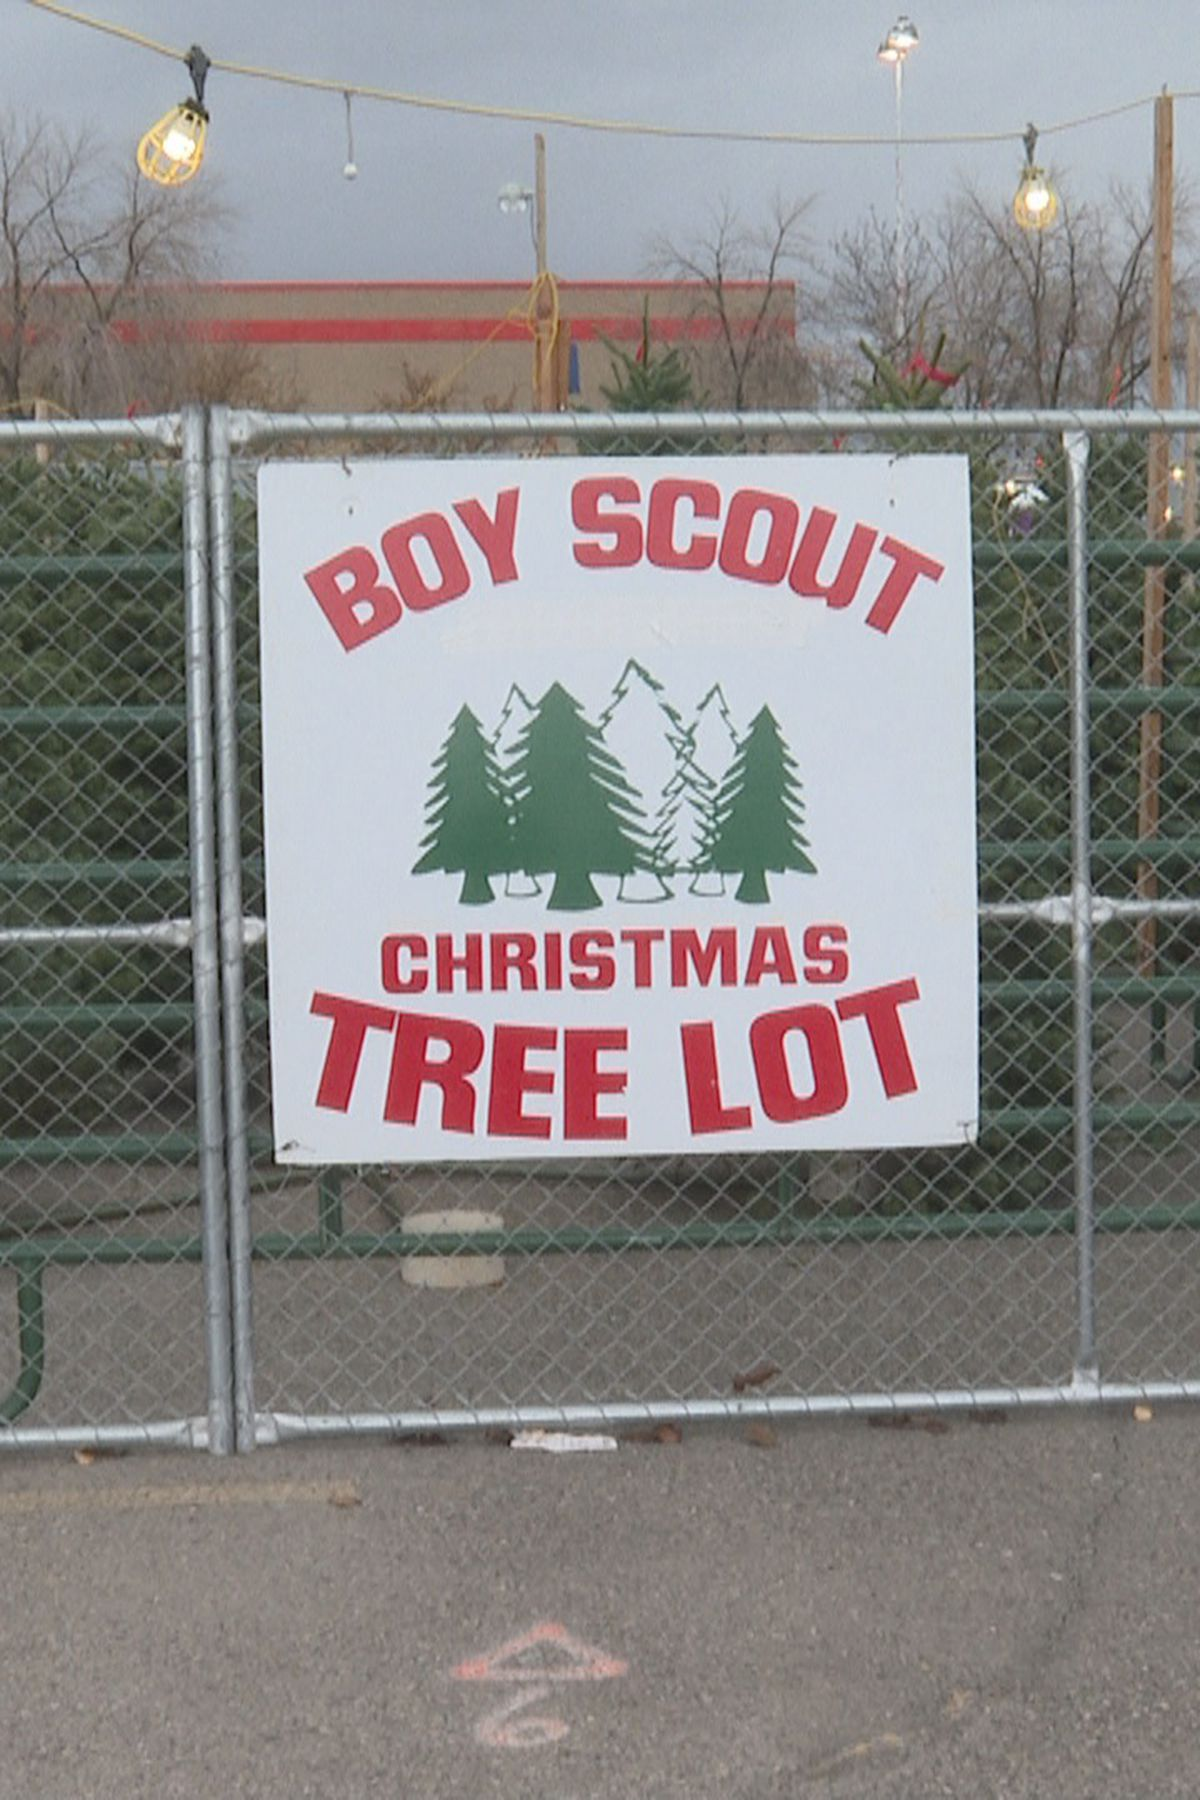 Local Boy Scout troops fundraise with Christmas tree sale